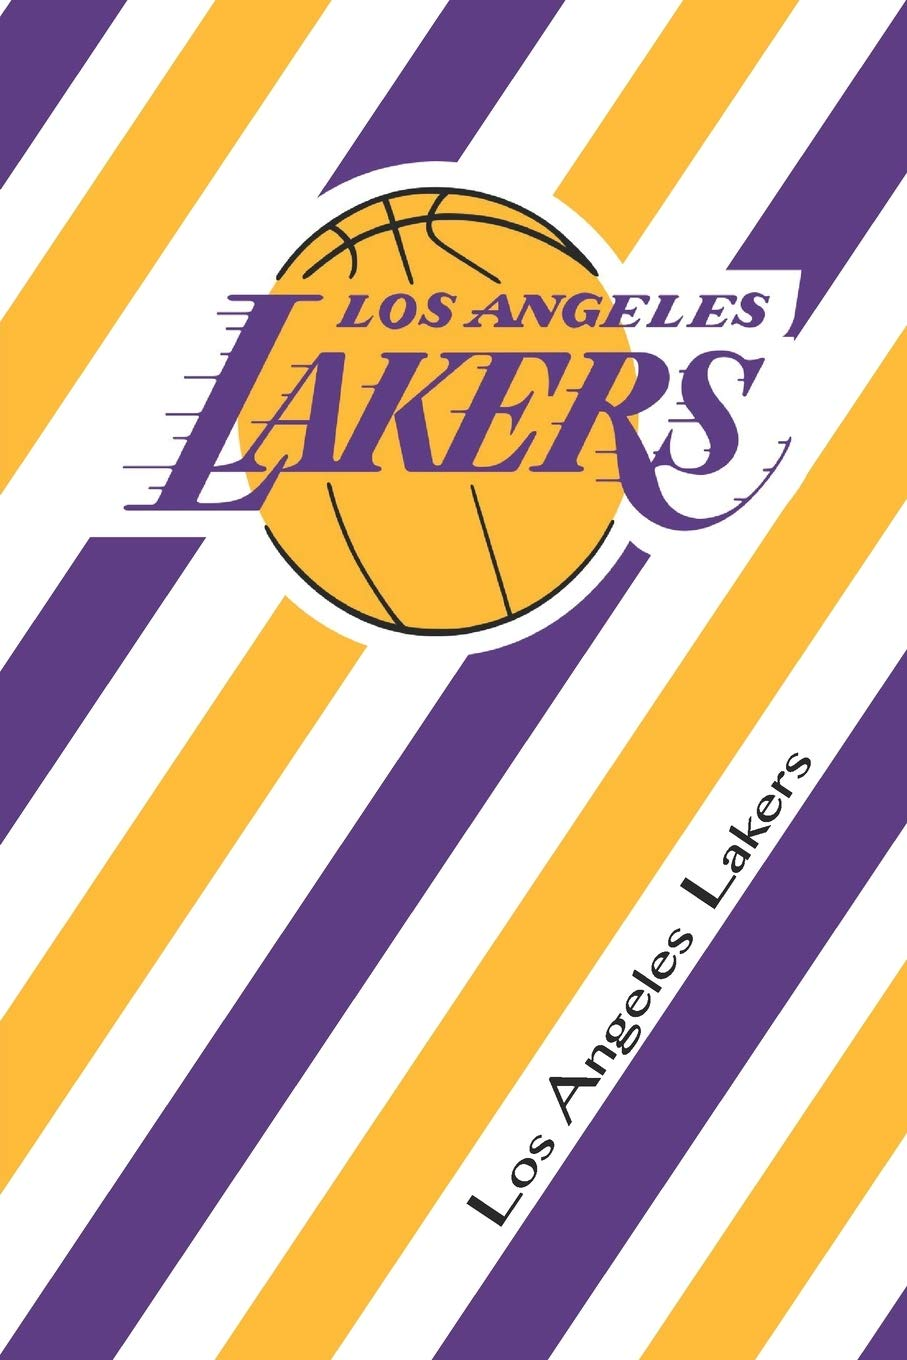 Los Angeles Lakers Lakers Striped Journal Laker Fan Appreciation Notebook Nba Journal Notebook Villa Antwan 9781694667397 Amazon Com Books